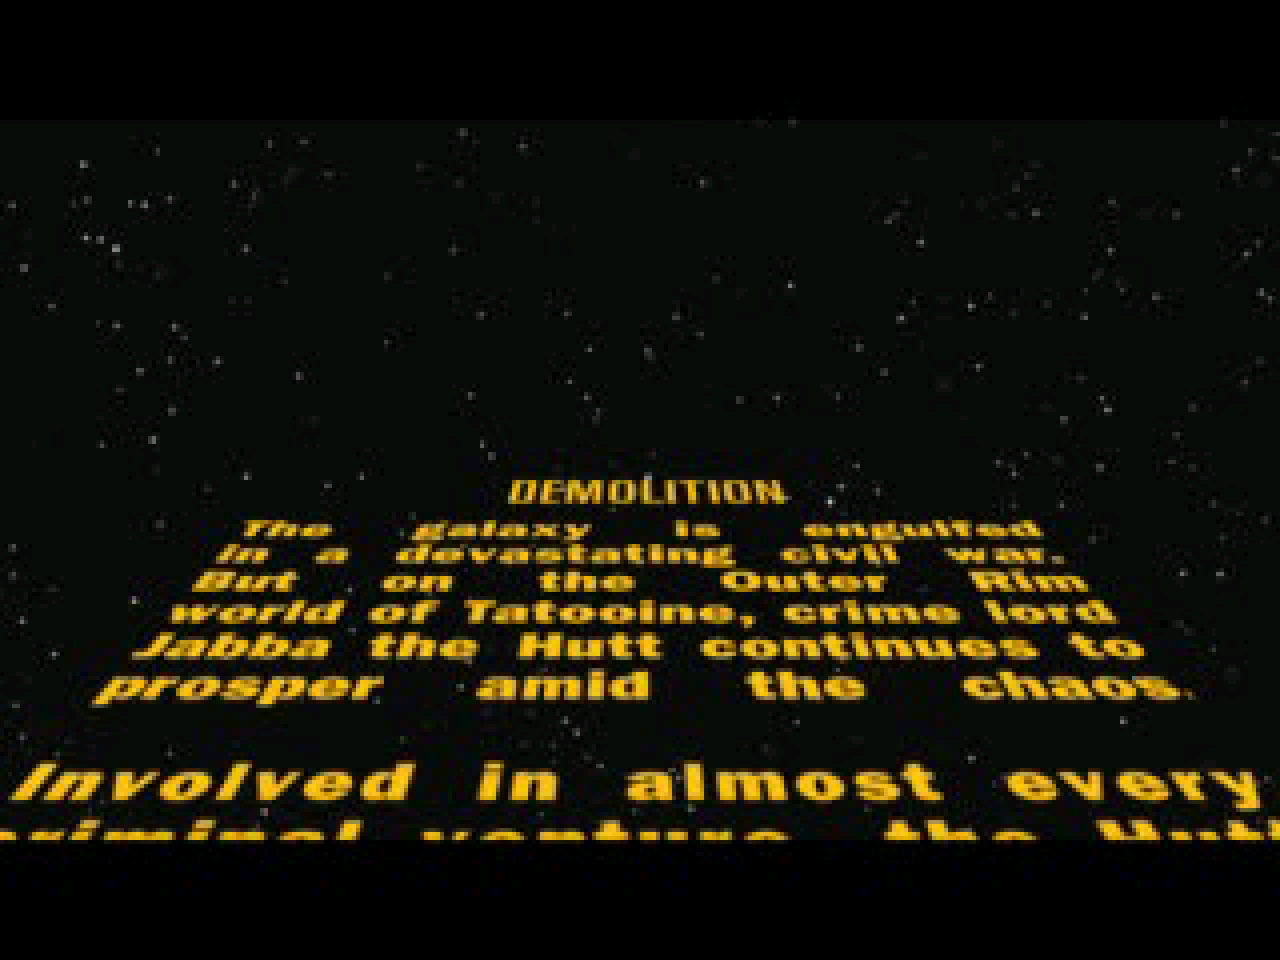 https://s3.eu-west-3.amazonaws.com/games.anthony-dessalles.com/Star Wars Demolition PS1 2020 - Screenshots/Star Wars Demolition-201125-204714.png